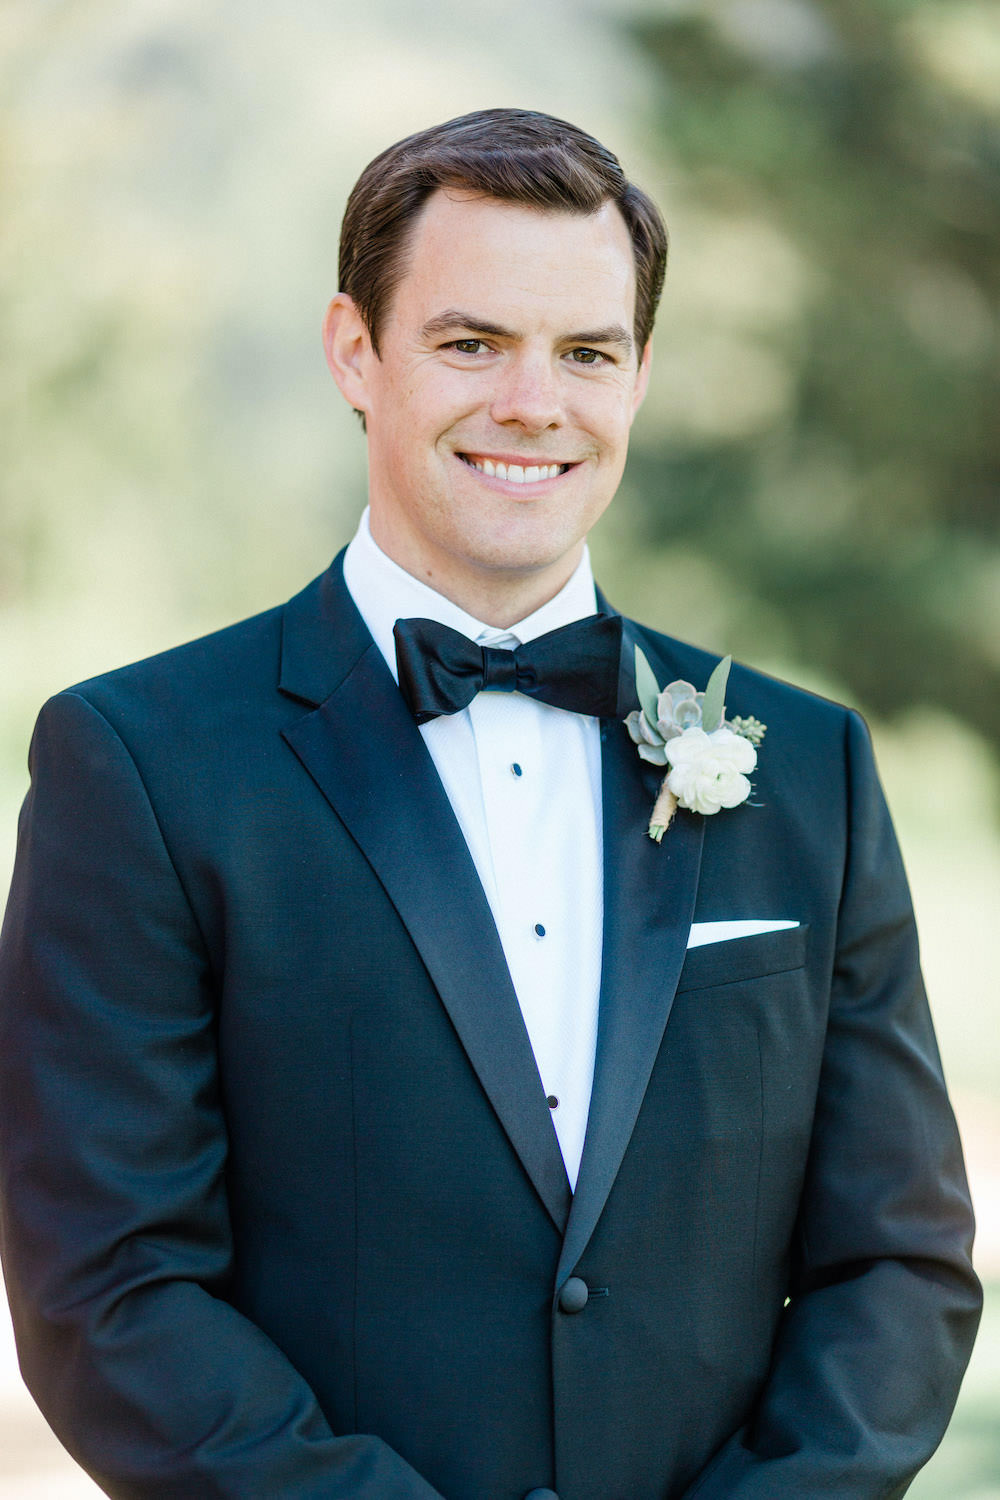 Groom Tux Tuxedo Suit Bow Tie Pacific Coast Wedding Mallory Miya Photography